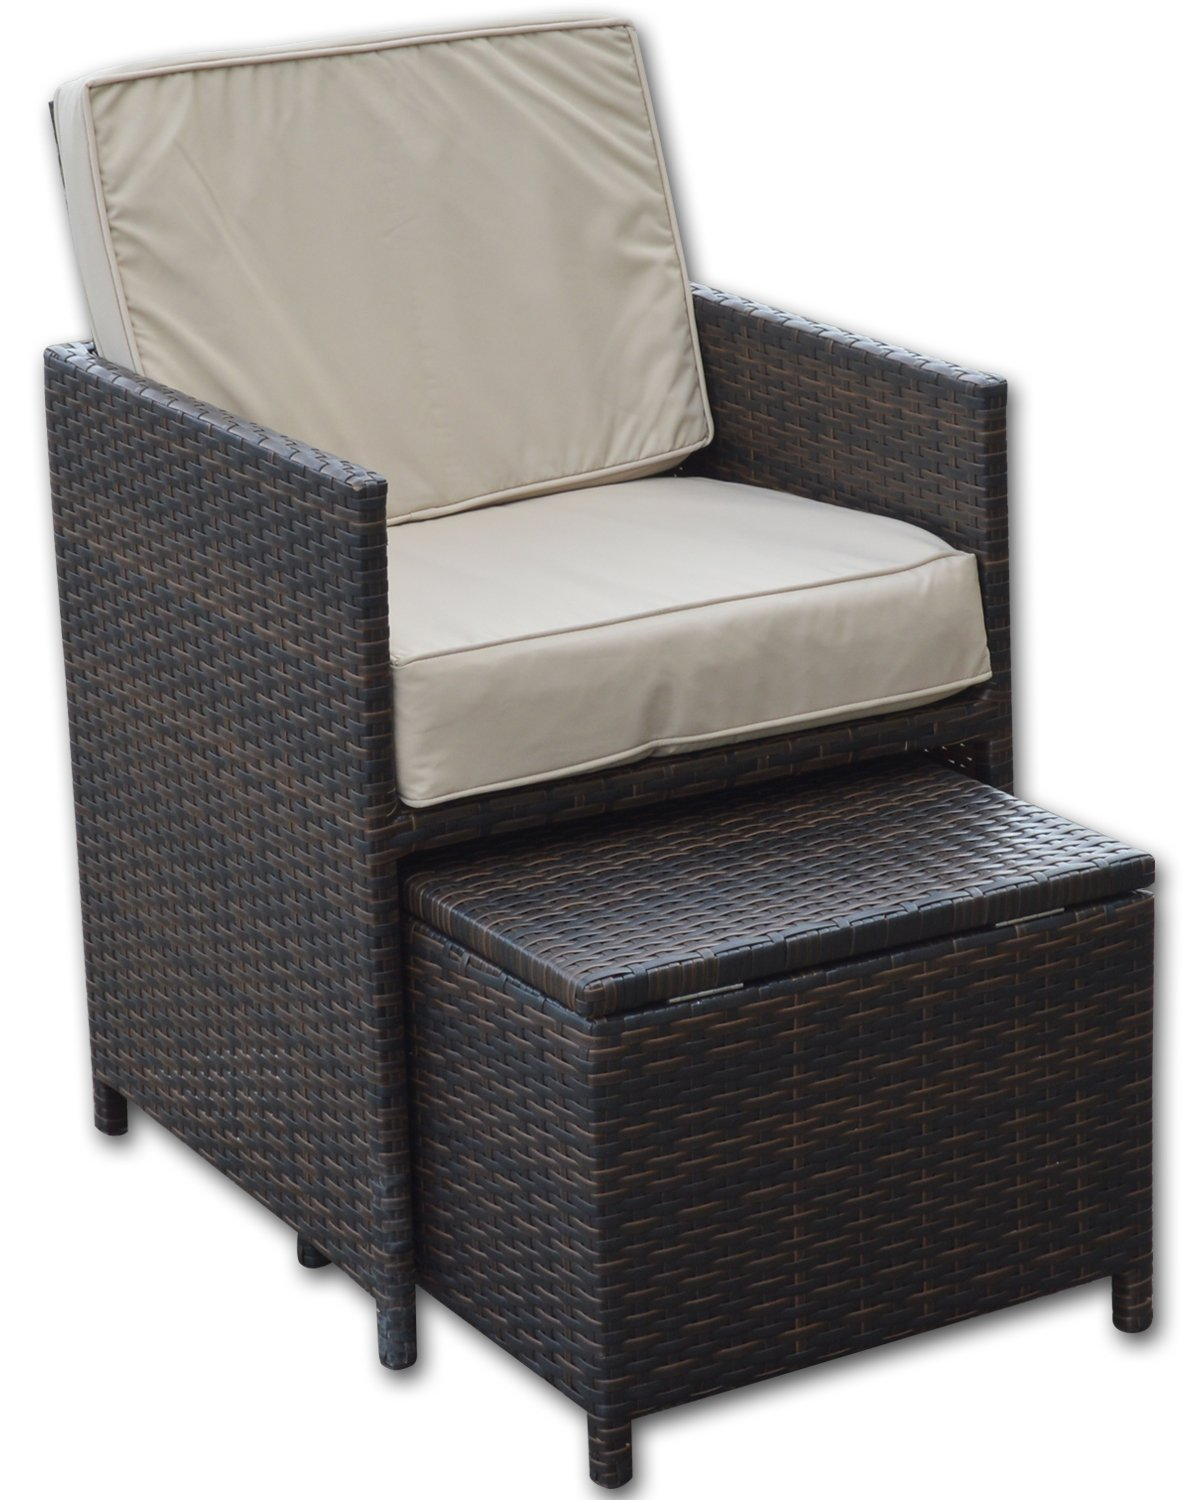 Woodside Replacement Rattan Garden Patio Furniture Seat & Back Cushions